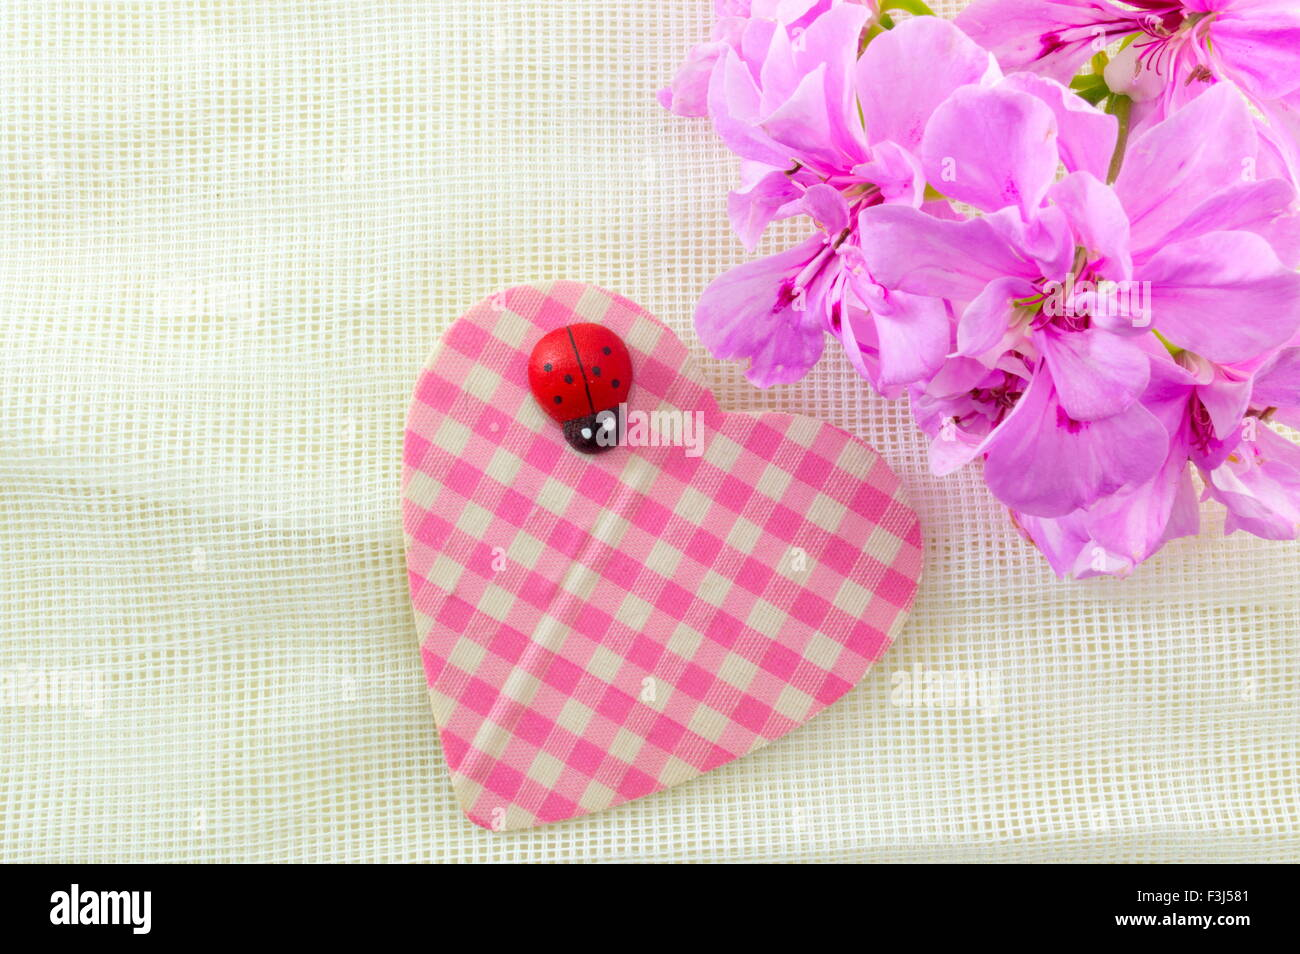 Cute heart shape with pink flowers background stock photo 88295089 cute heart shape with pink flowers background mightylinksfo